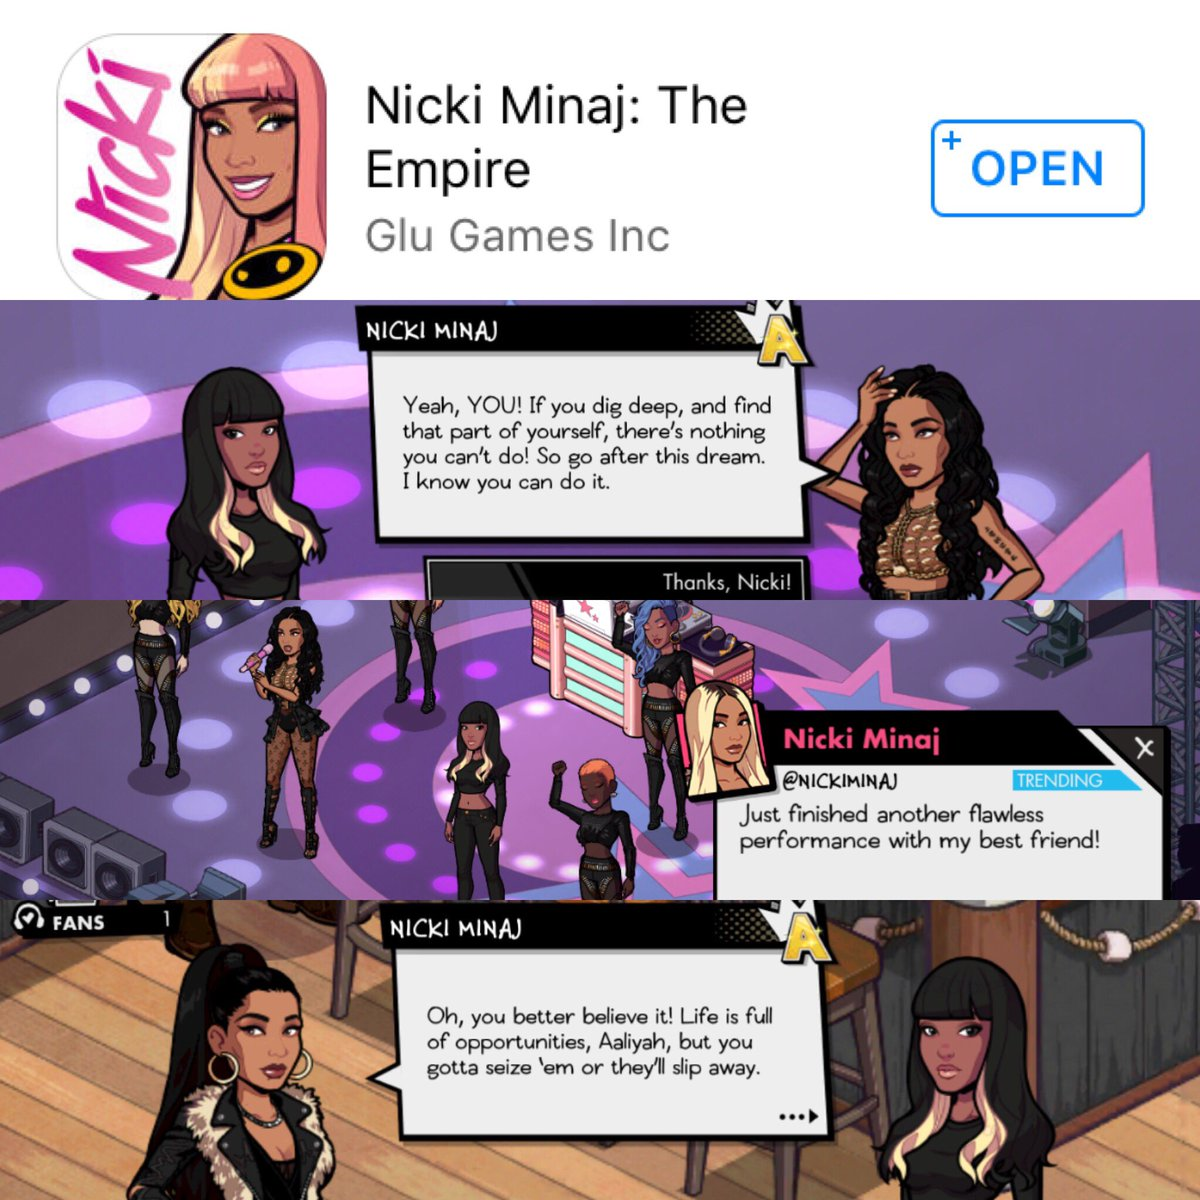 RT @liyahhun: @NICKIMINAJ you're my best friend/big sis in my head ok???????? and in the game #NickiMinajTheEmpire https://t.co/NZq8aQWRJw